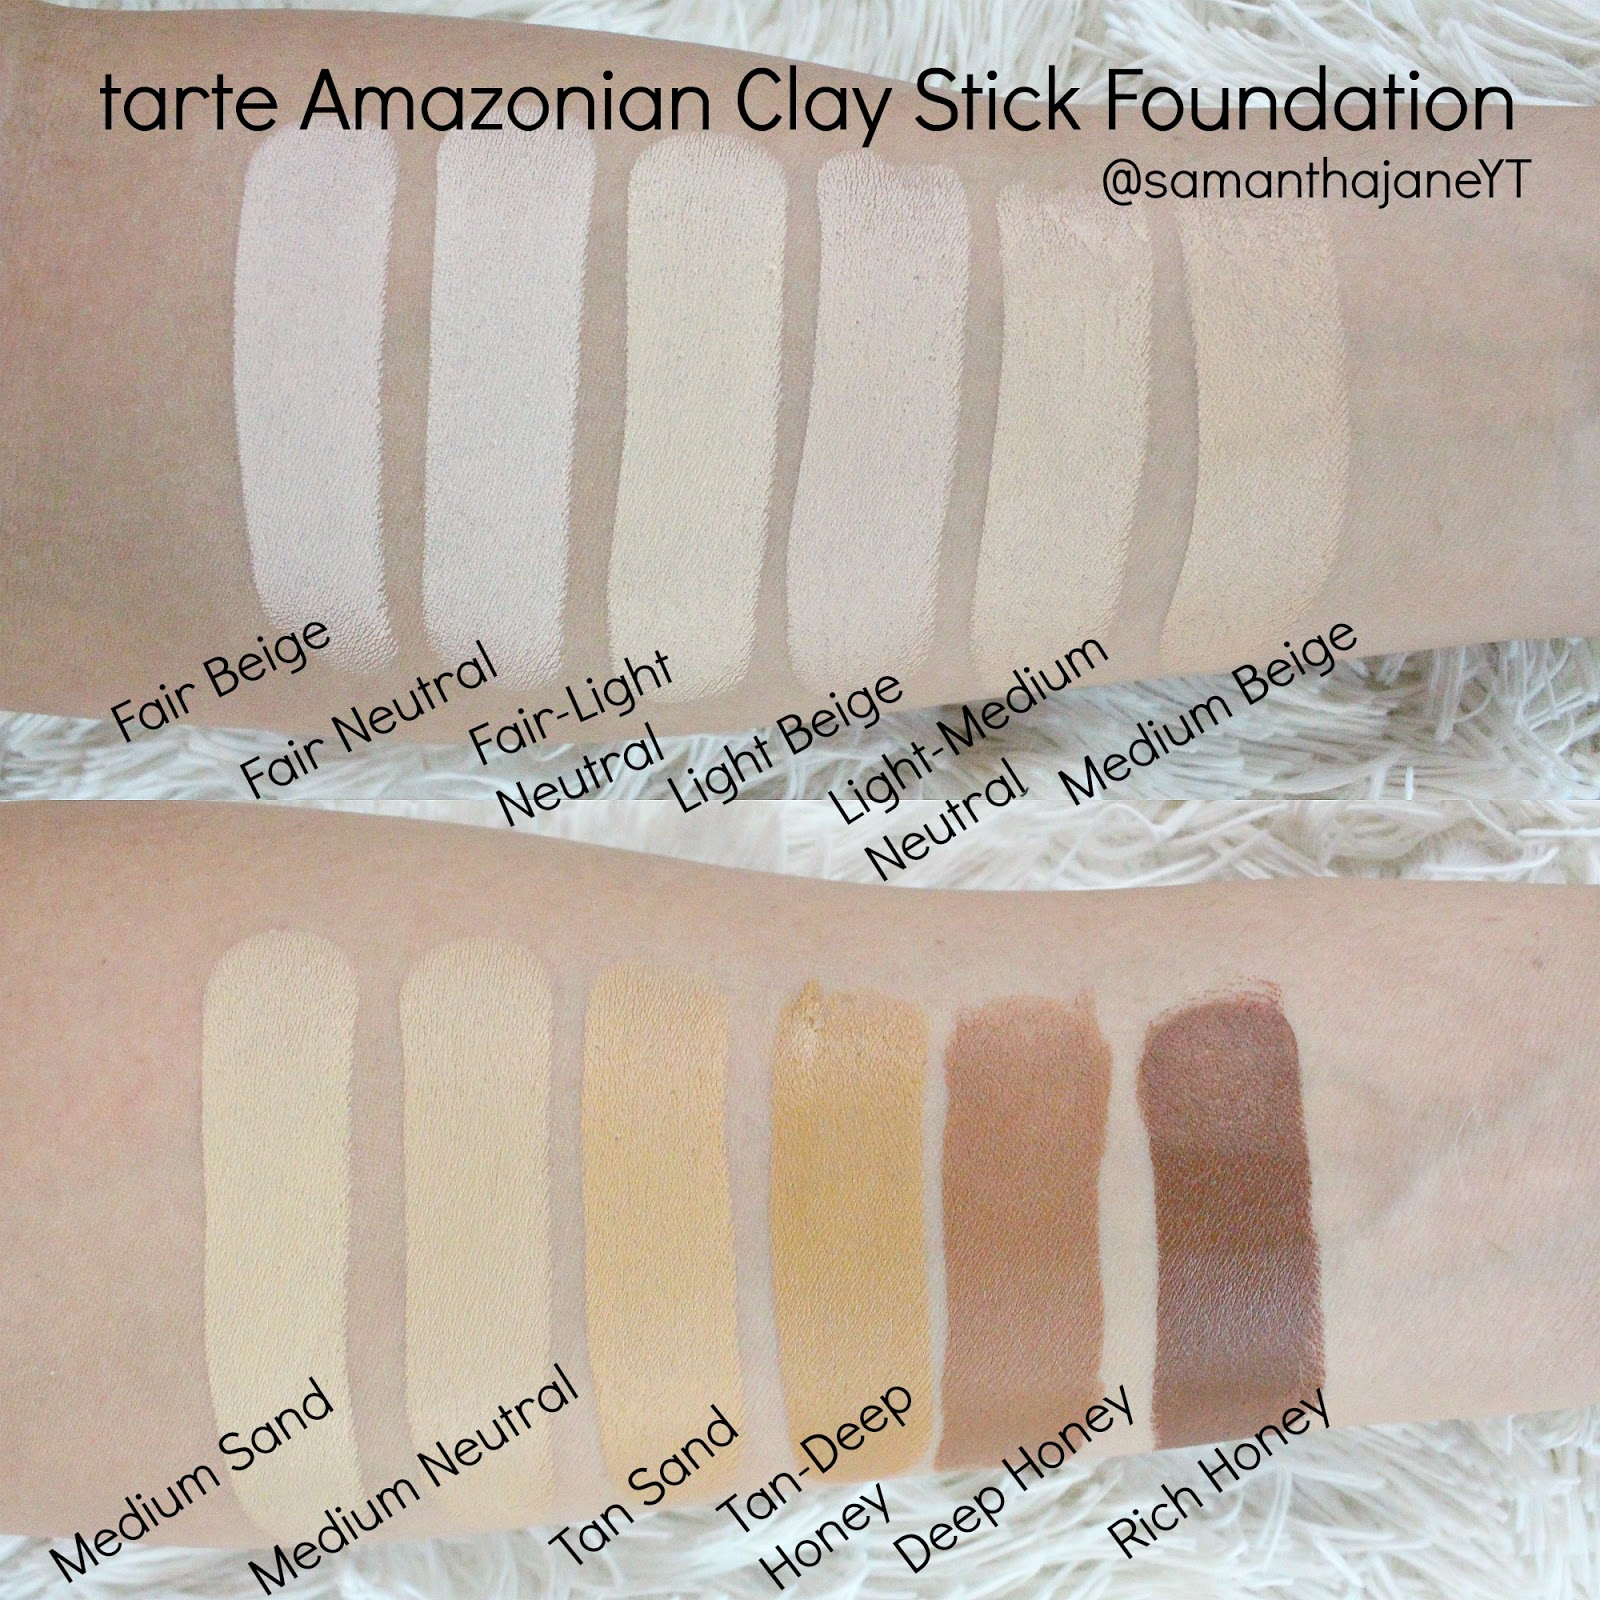 tarte amazonian clay stick foundation tarte clay stick. Black Bedroom Furniture Sets. Home Design Ideas